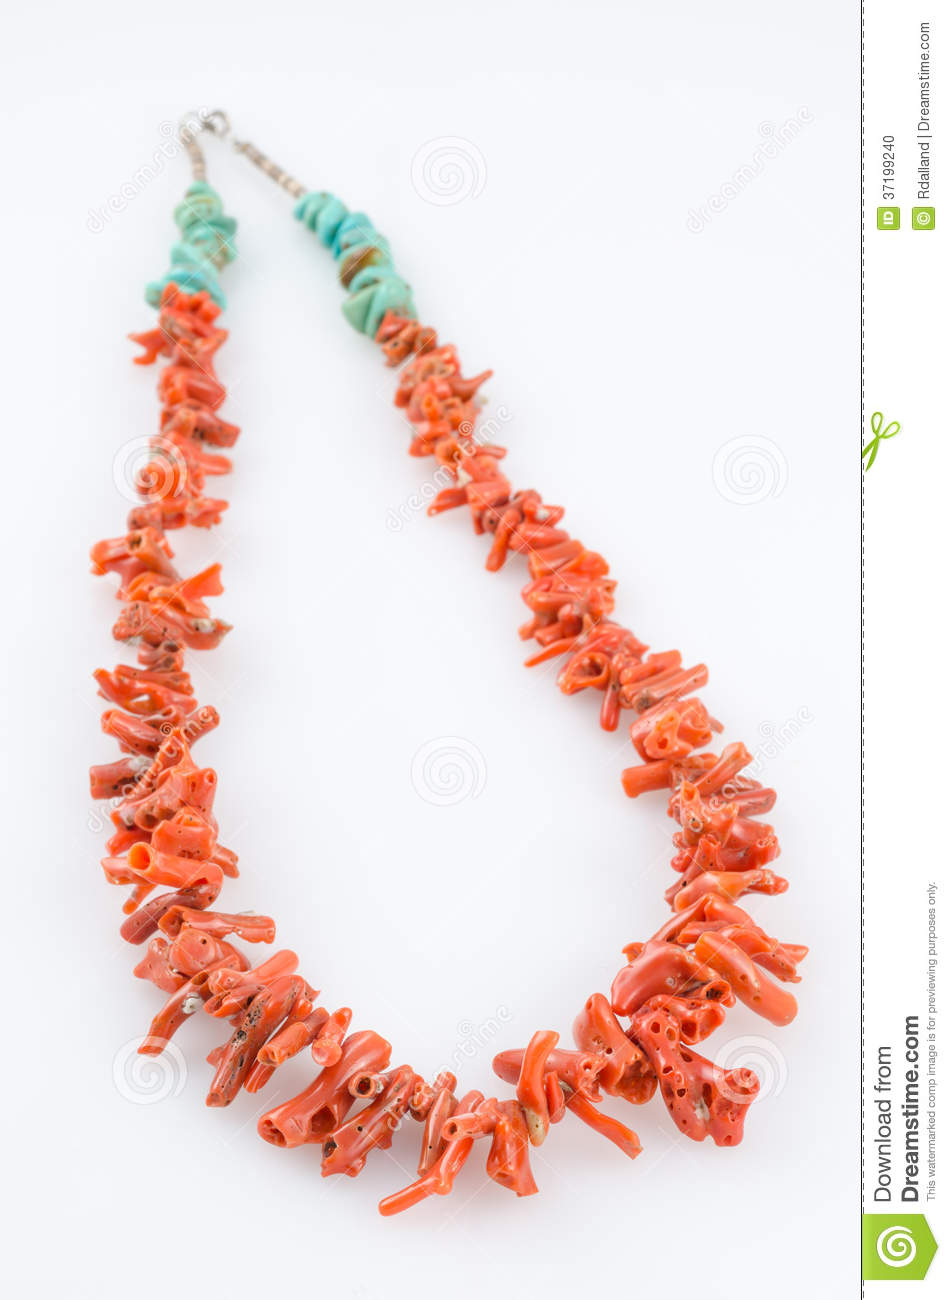 coral and turquoise necklace stock photo image of handcrafted